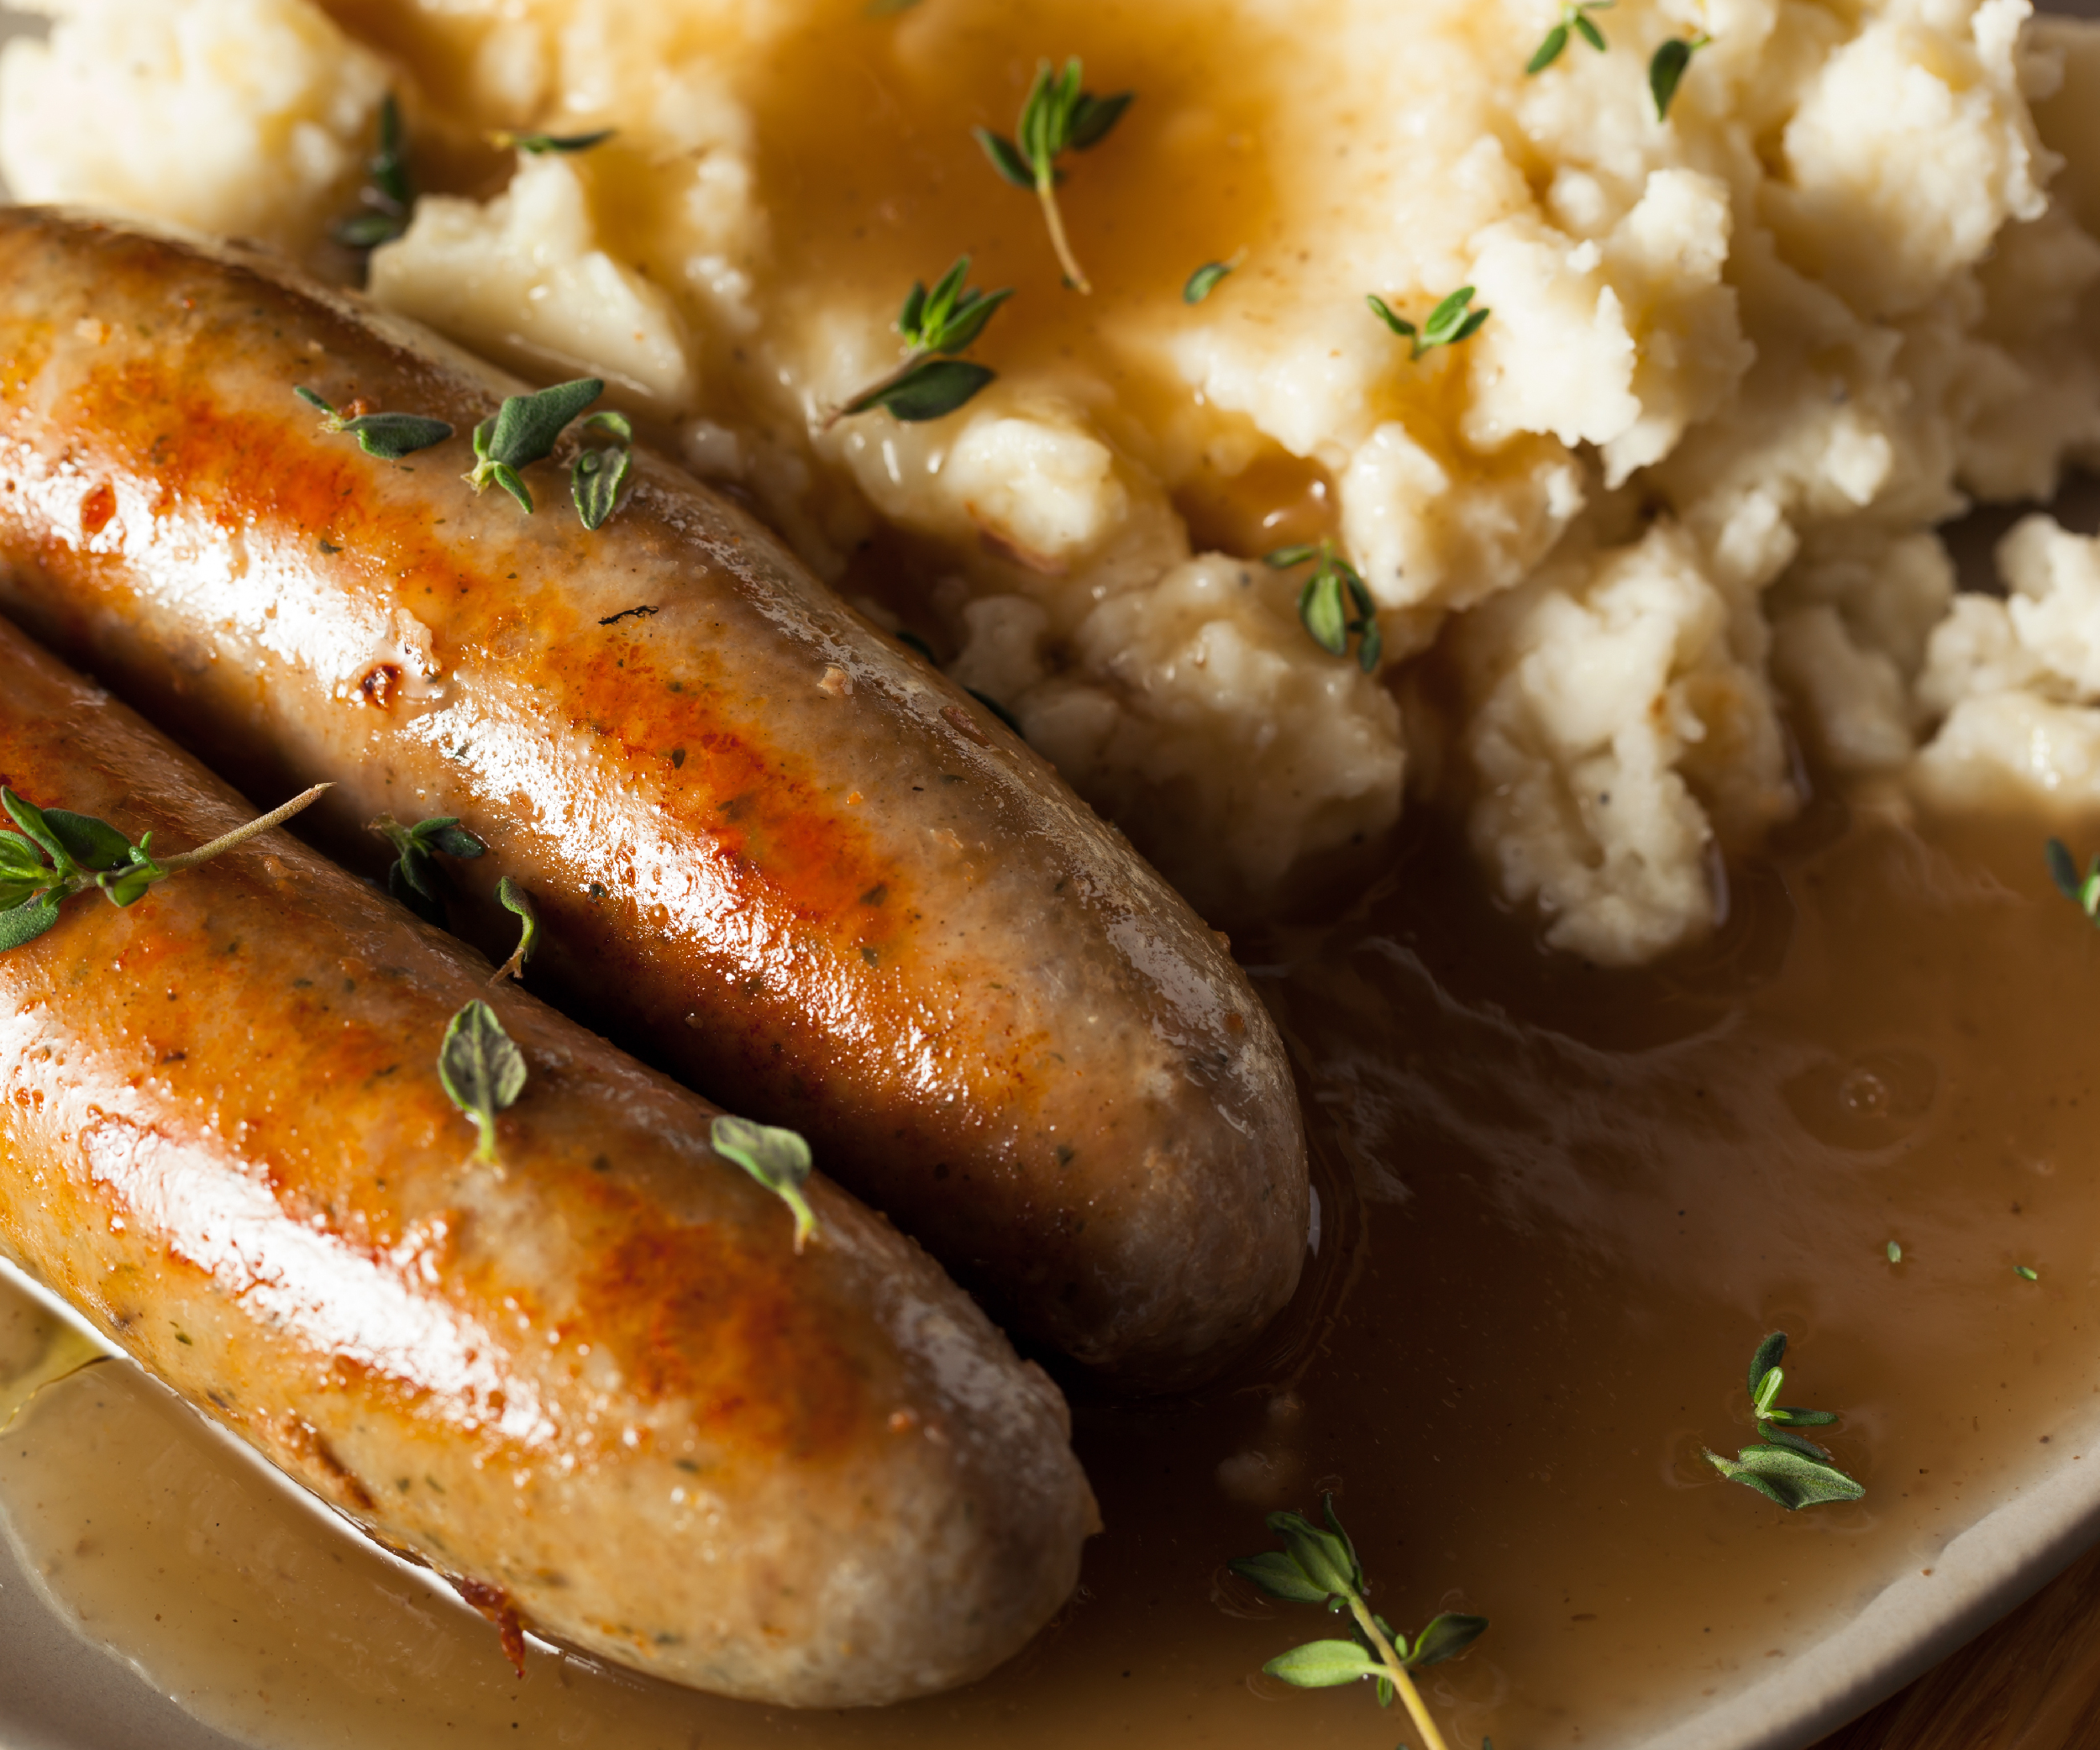 Celebrate St. Patrick's Day with Bangers and Mash